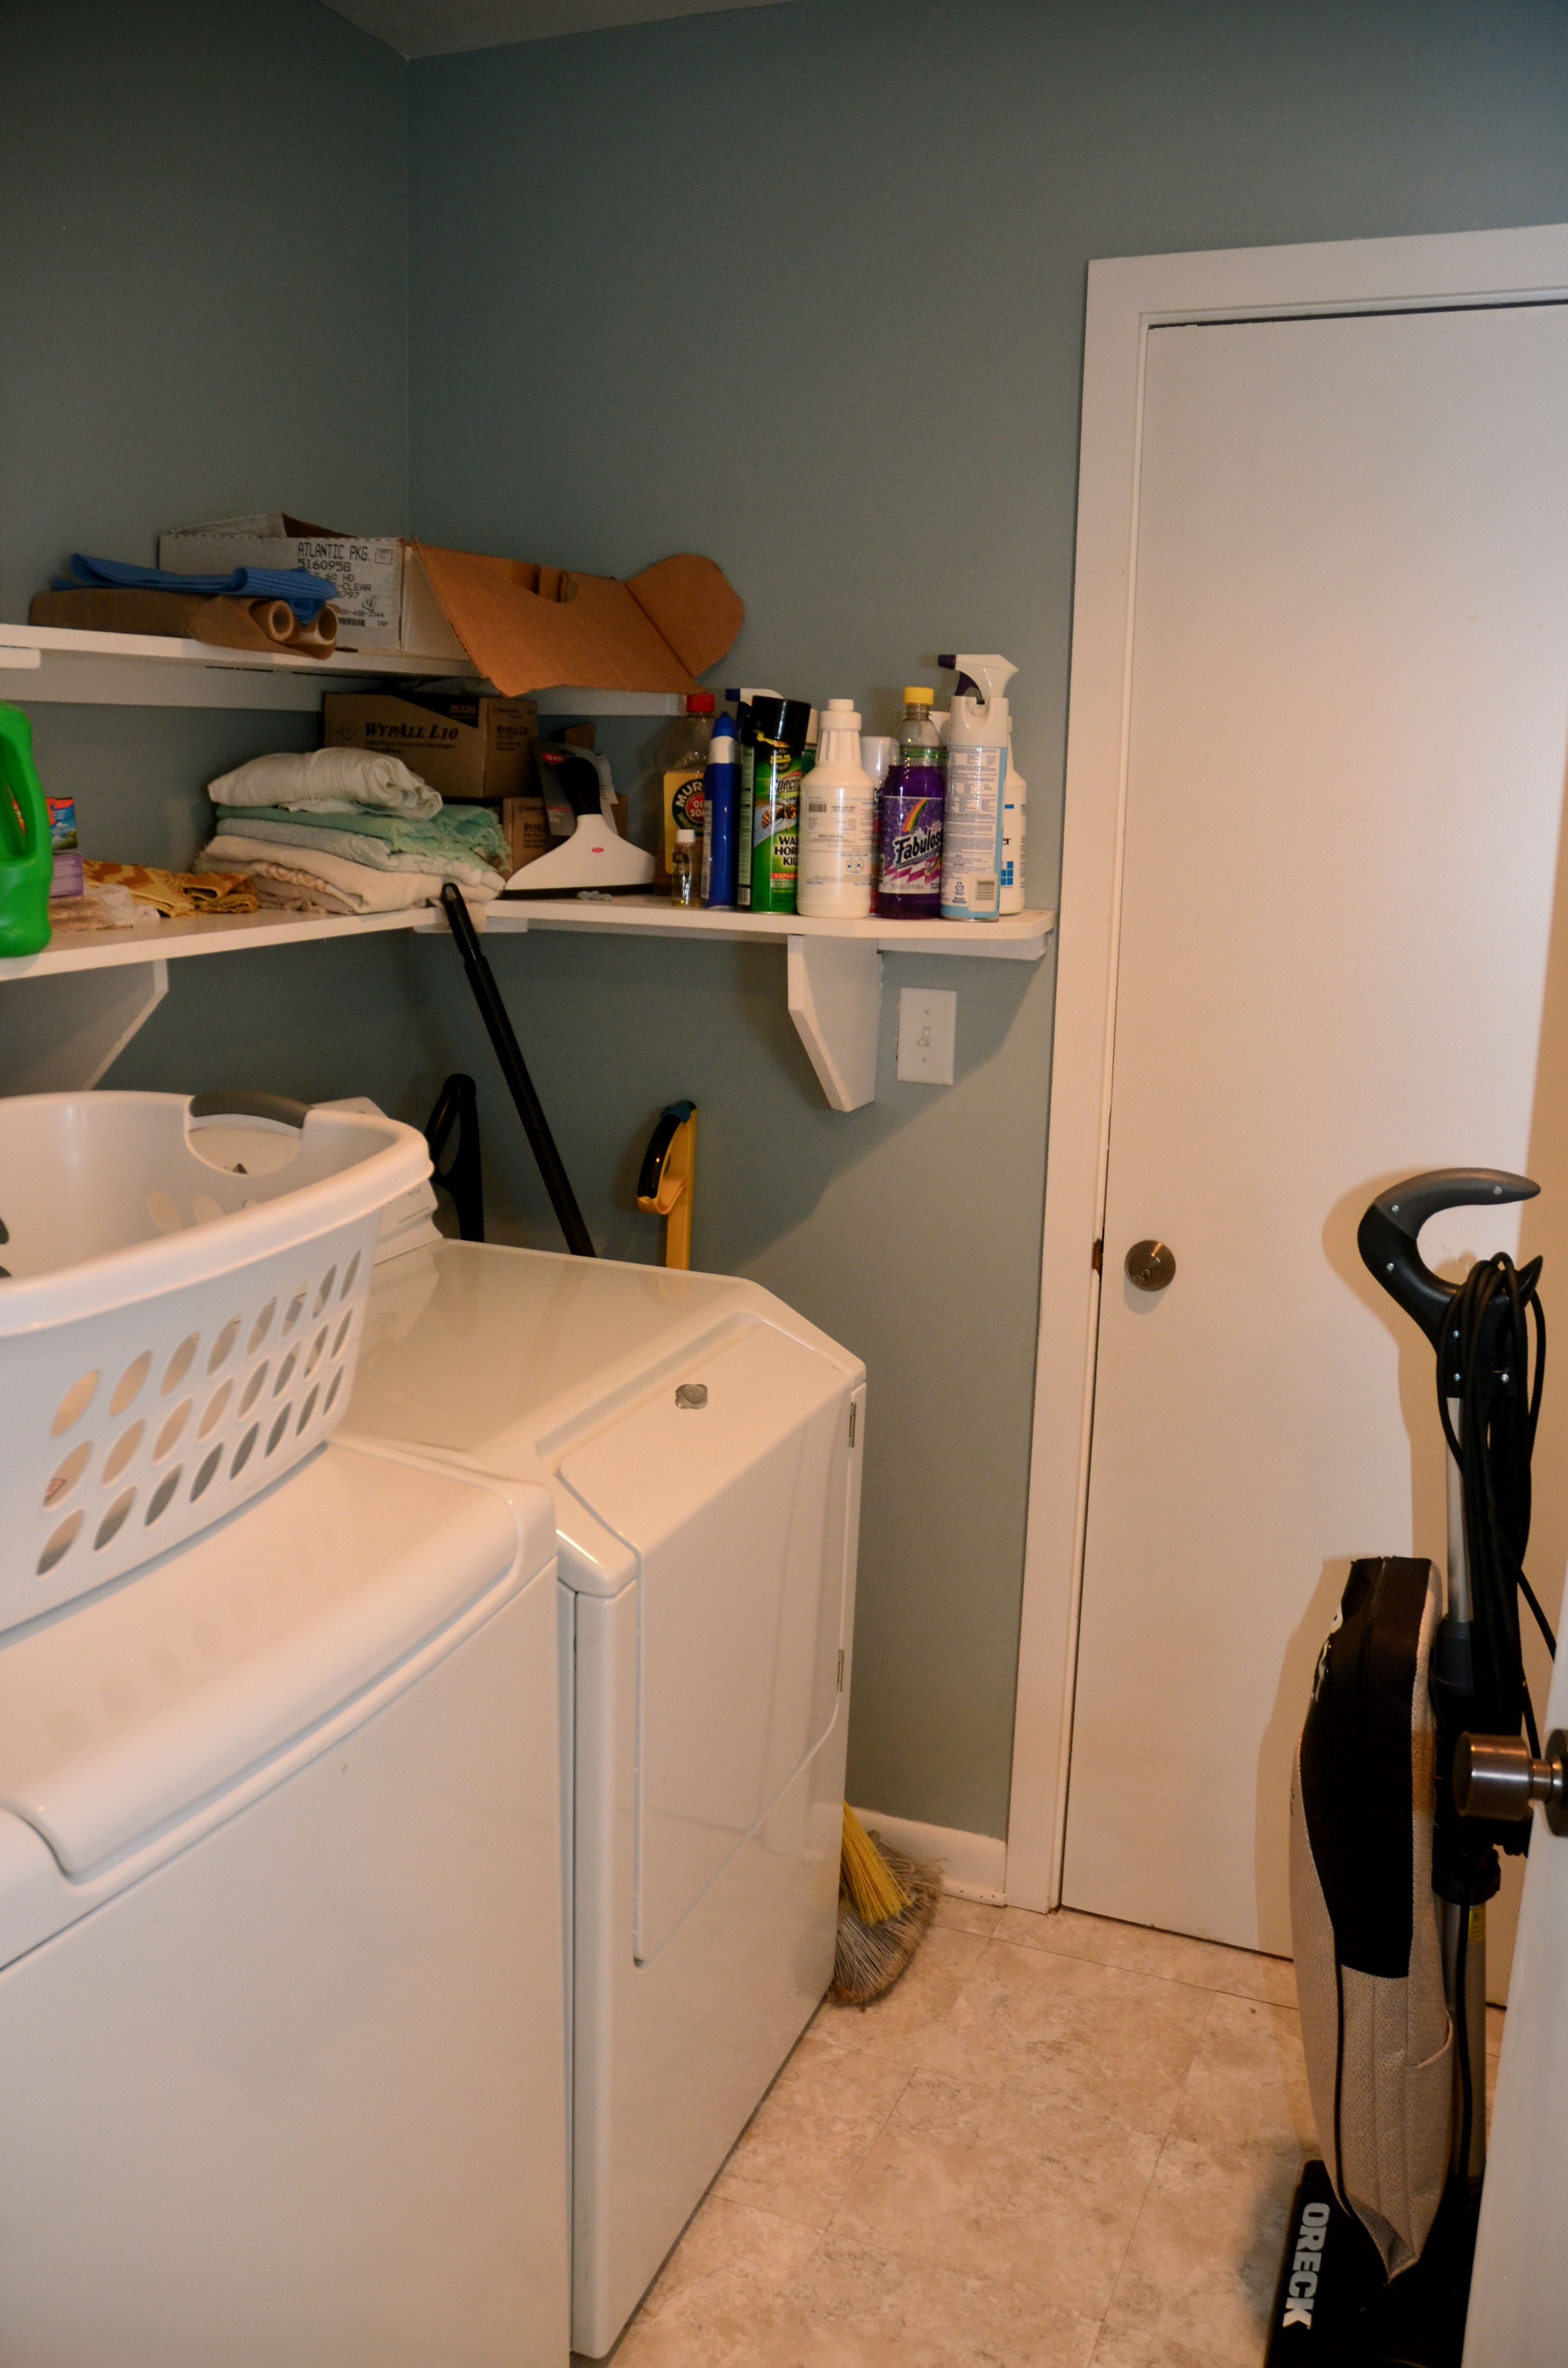 The lower level also has a laundry room with a full sized washer and dryer.